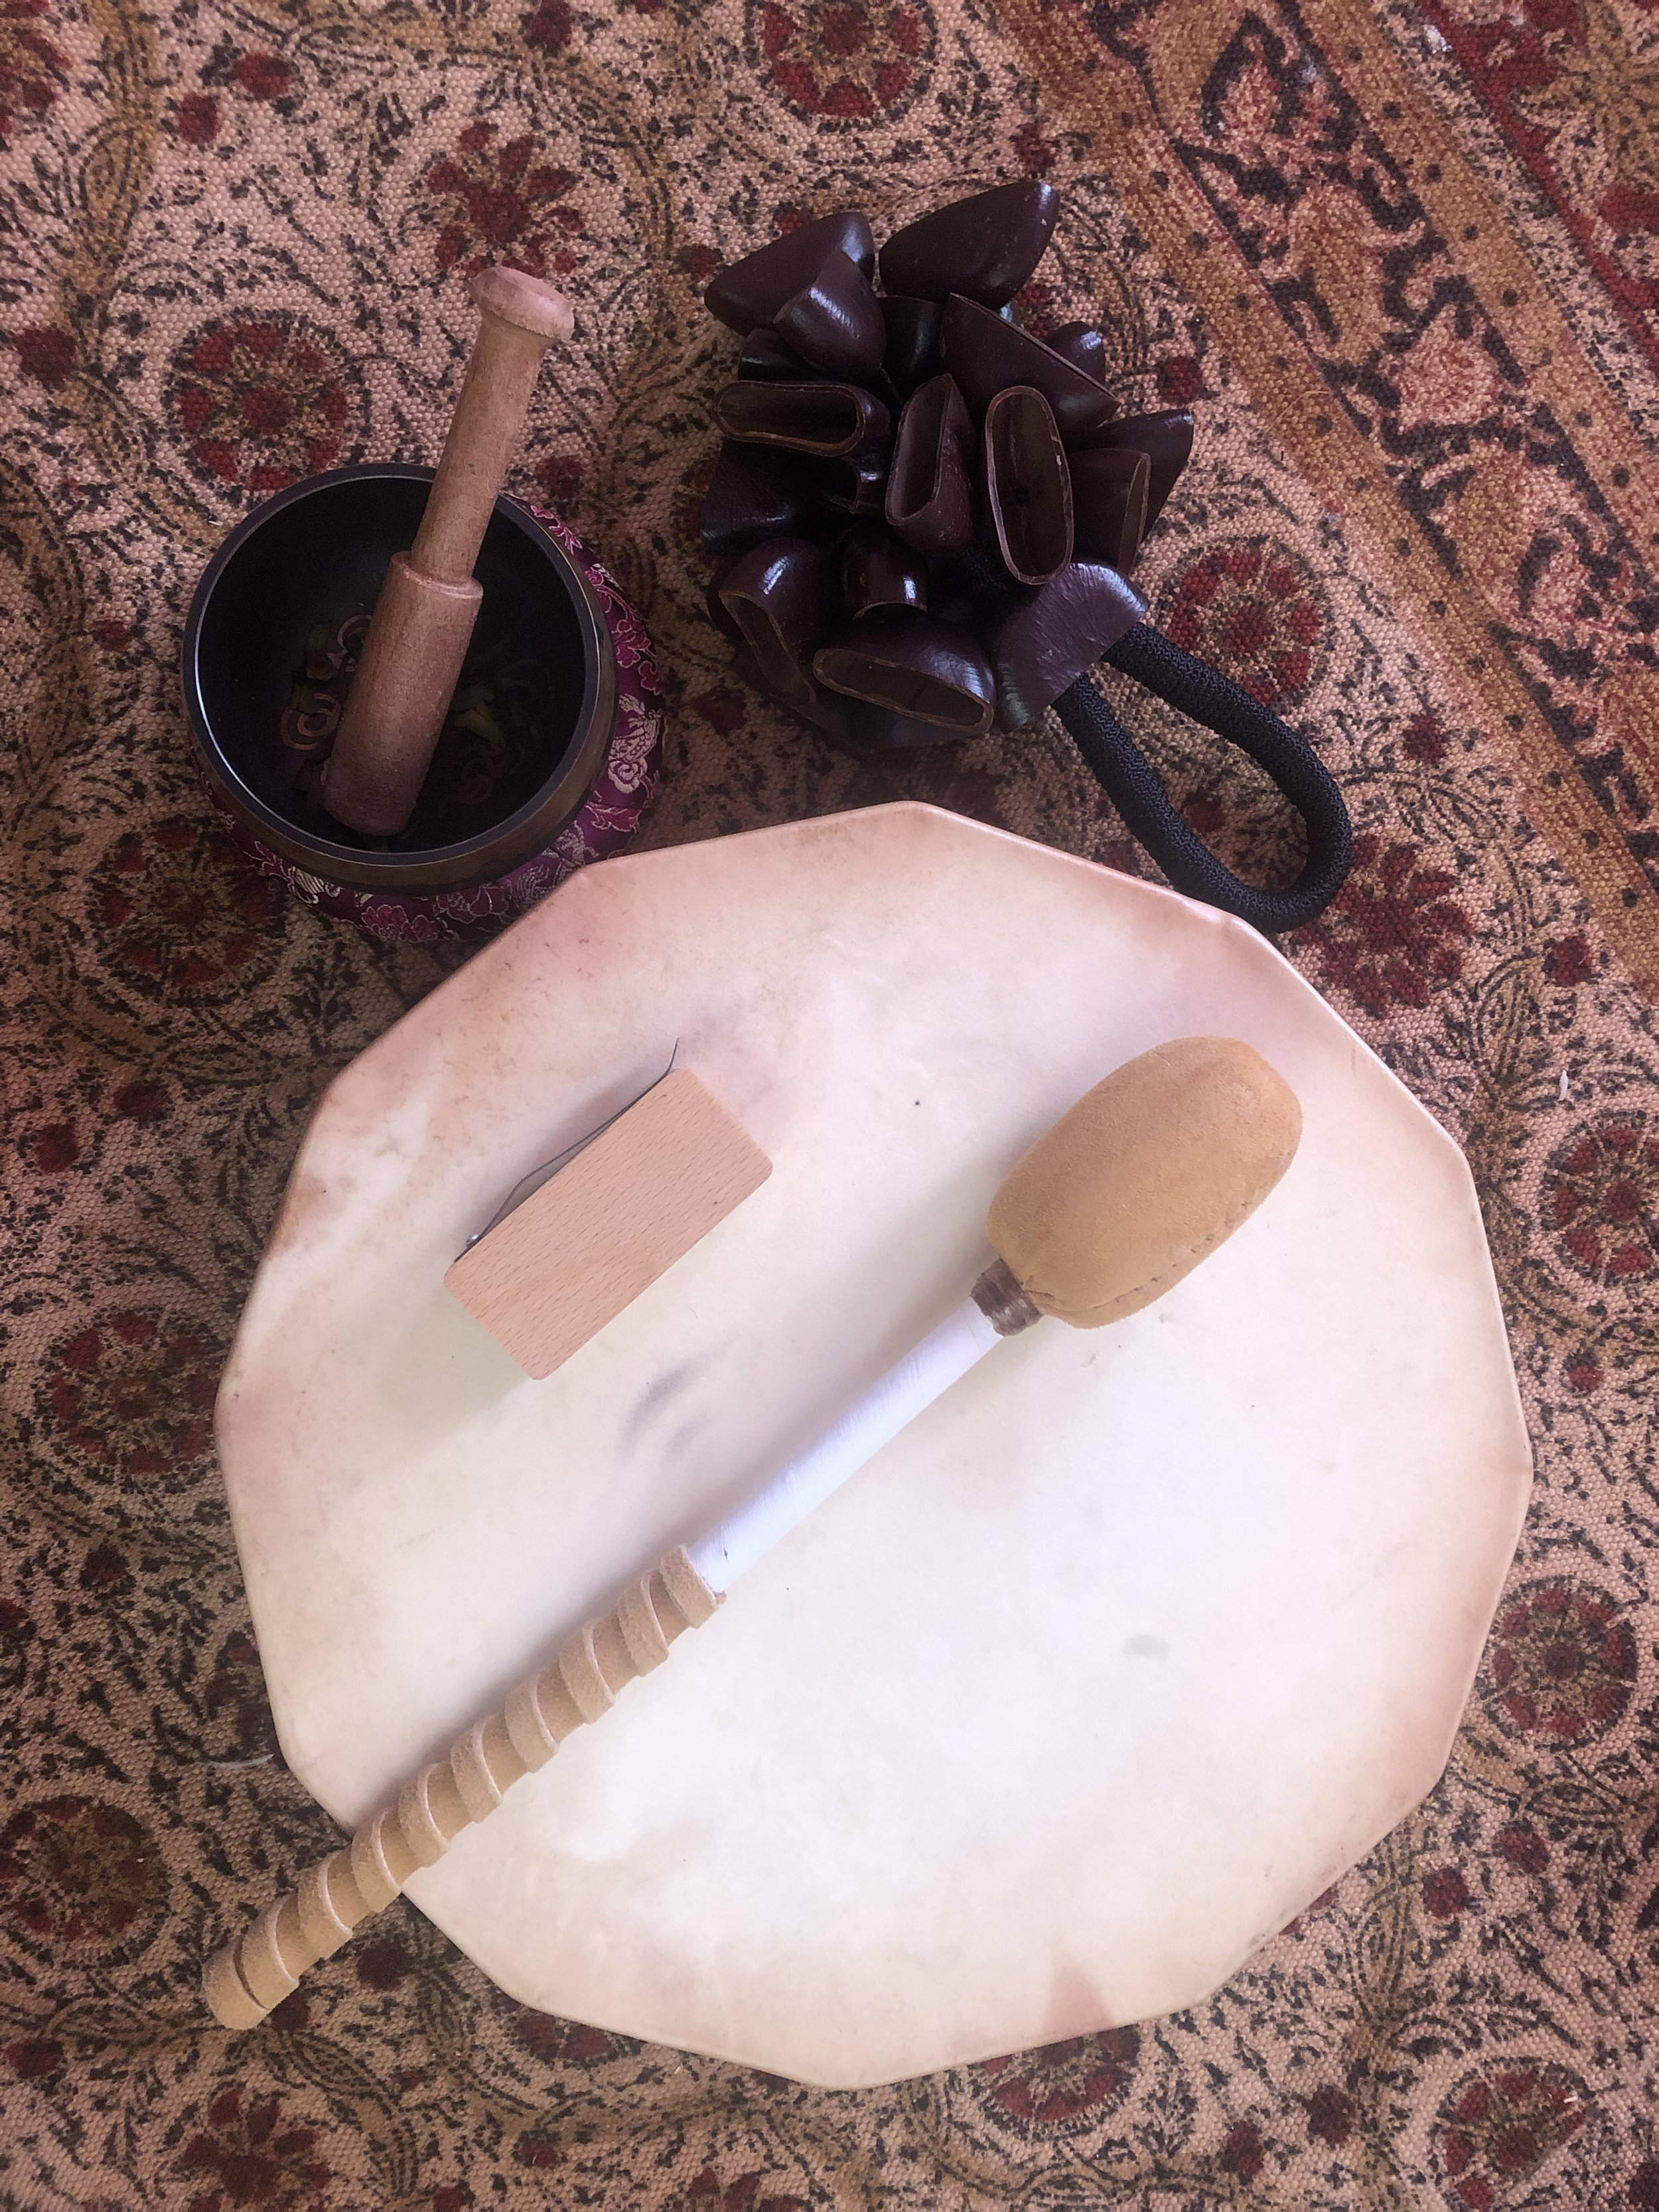 My current go-to instruments for my self-healing ceremonies